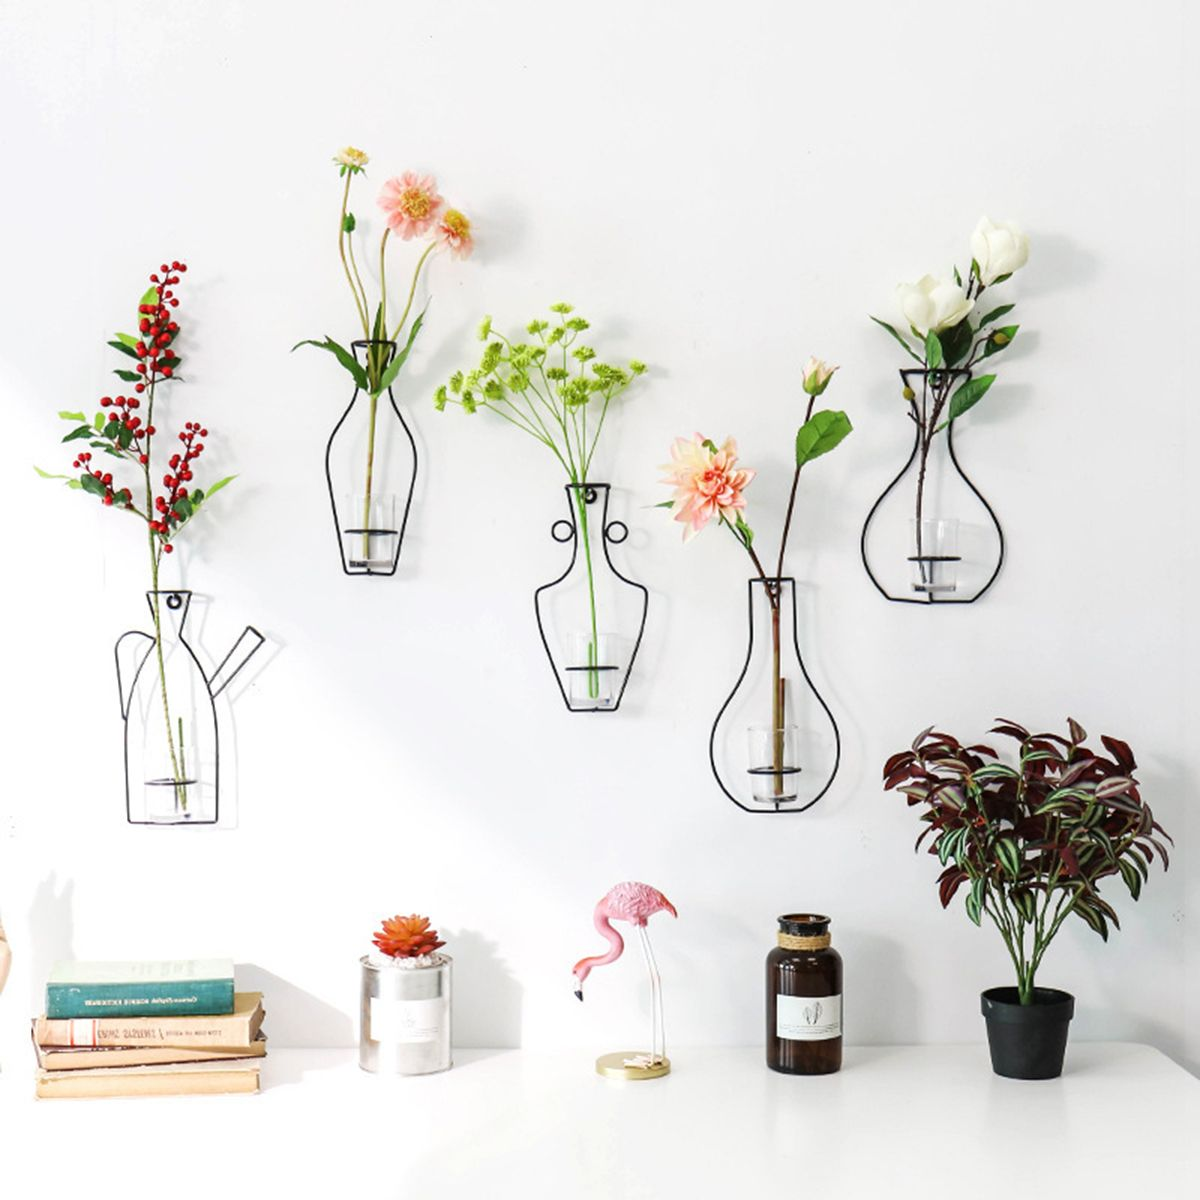 Nordic Metal Vase Glass Hydroponic Plant Container Ornaments Home Decor Accessories Hanging Terrarium Decor Wall Vase Terrarium Decor